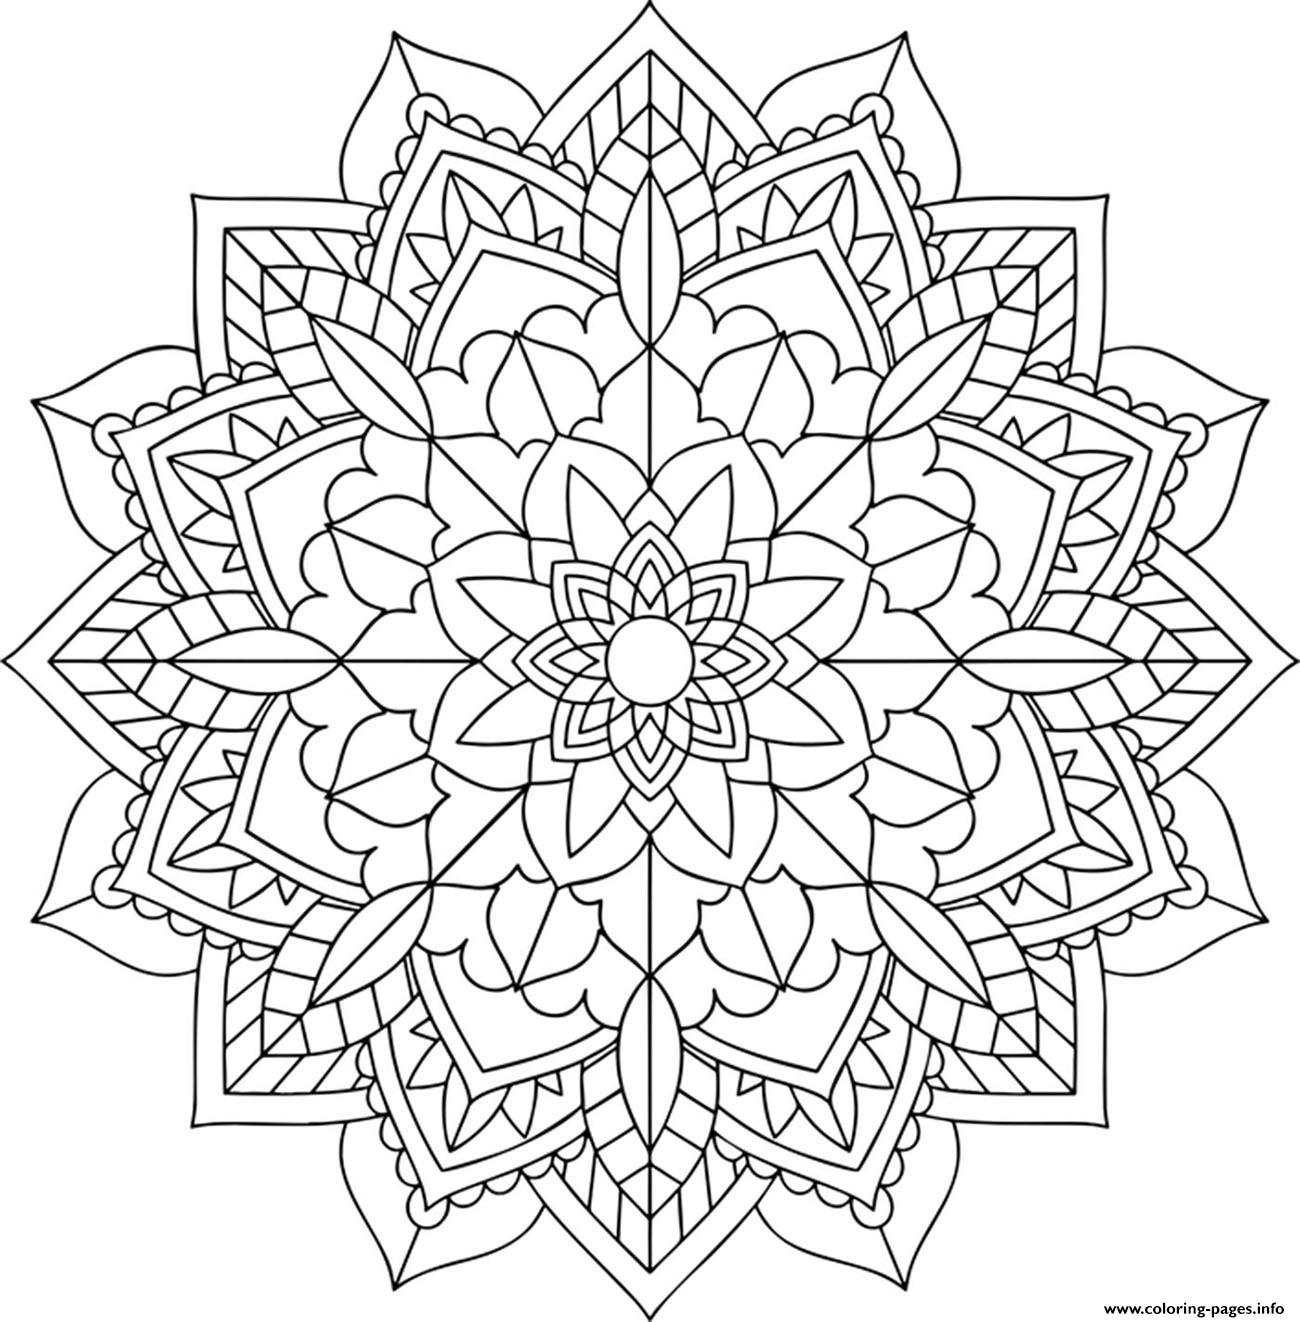 Floral Mandala Easy Coloring Pages Printable